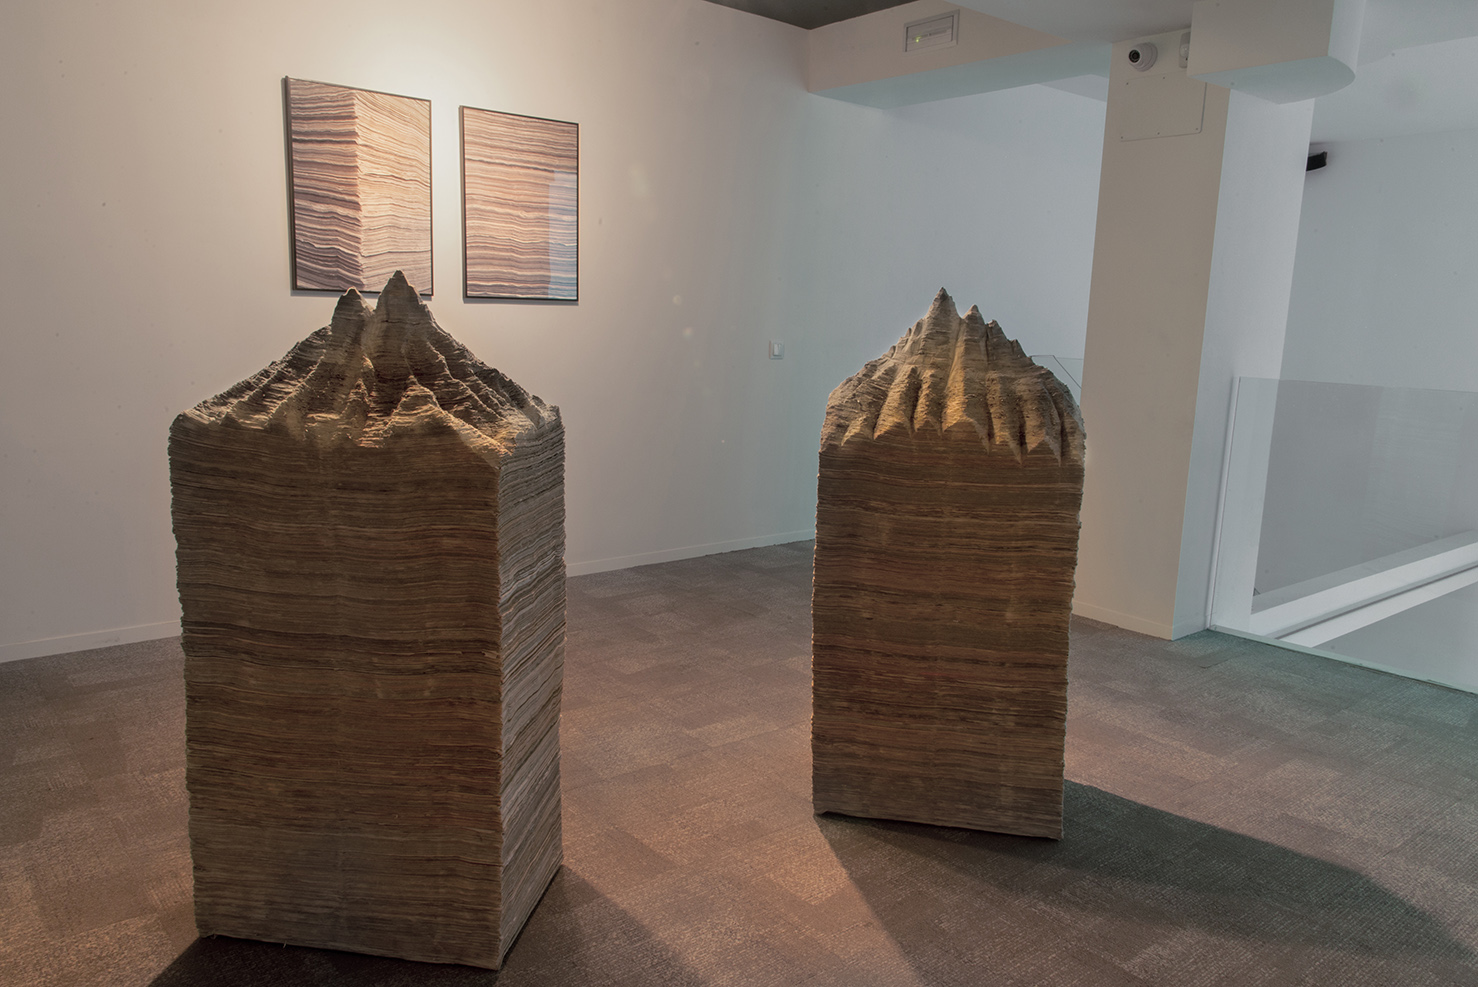 Exhibition view.  Mountain of newspapers III and IV, 2014. Newspapers. 126 x 59 x 41 cm